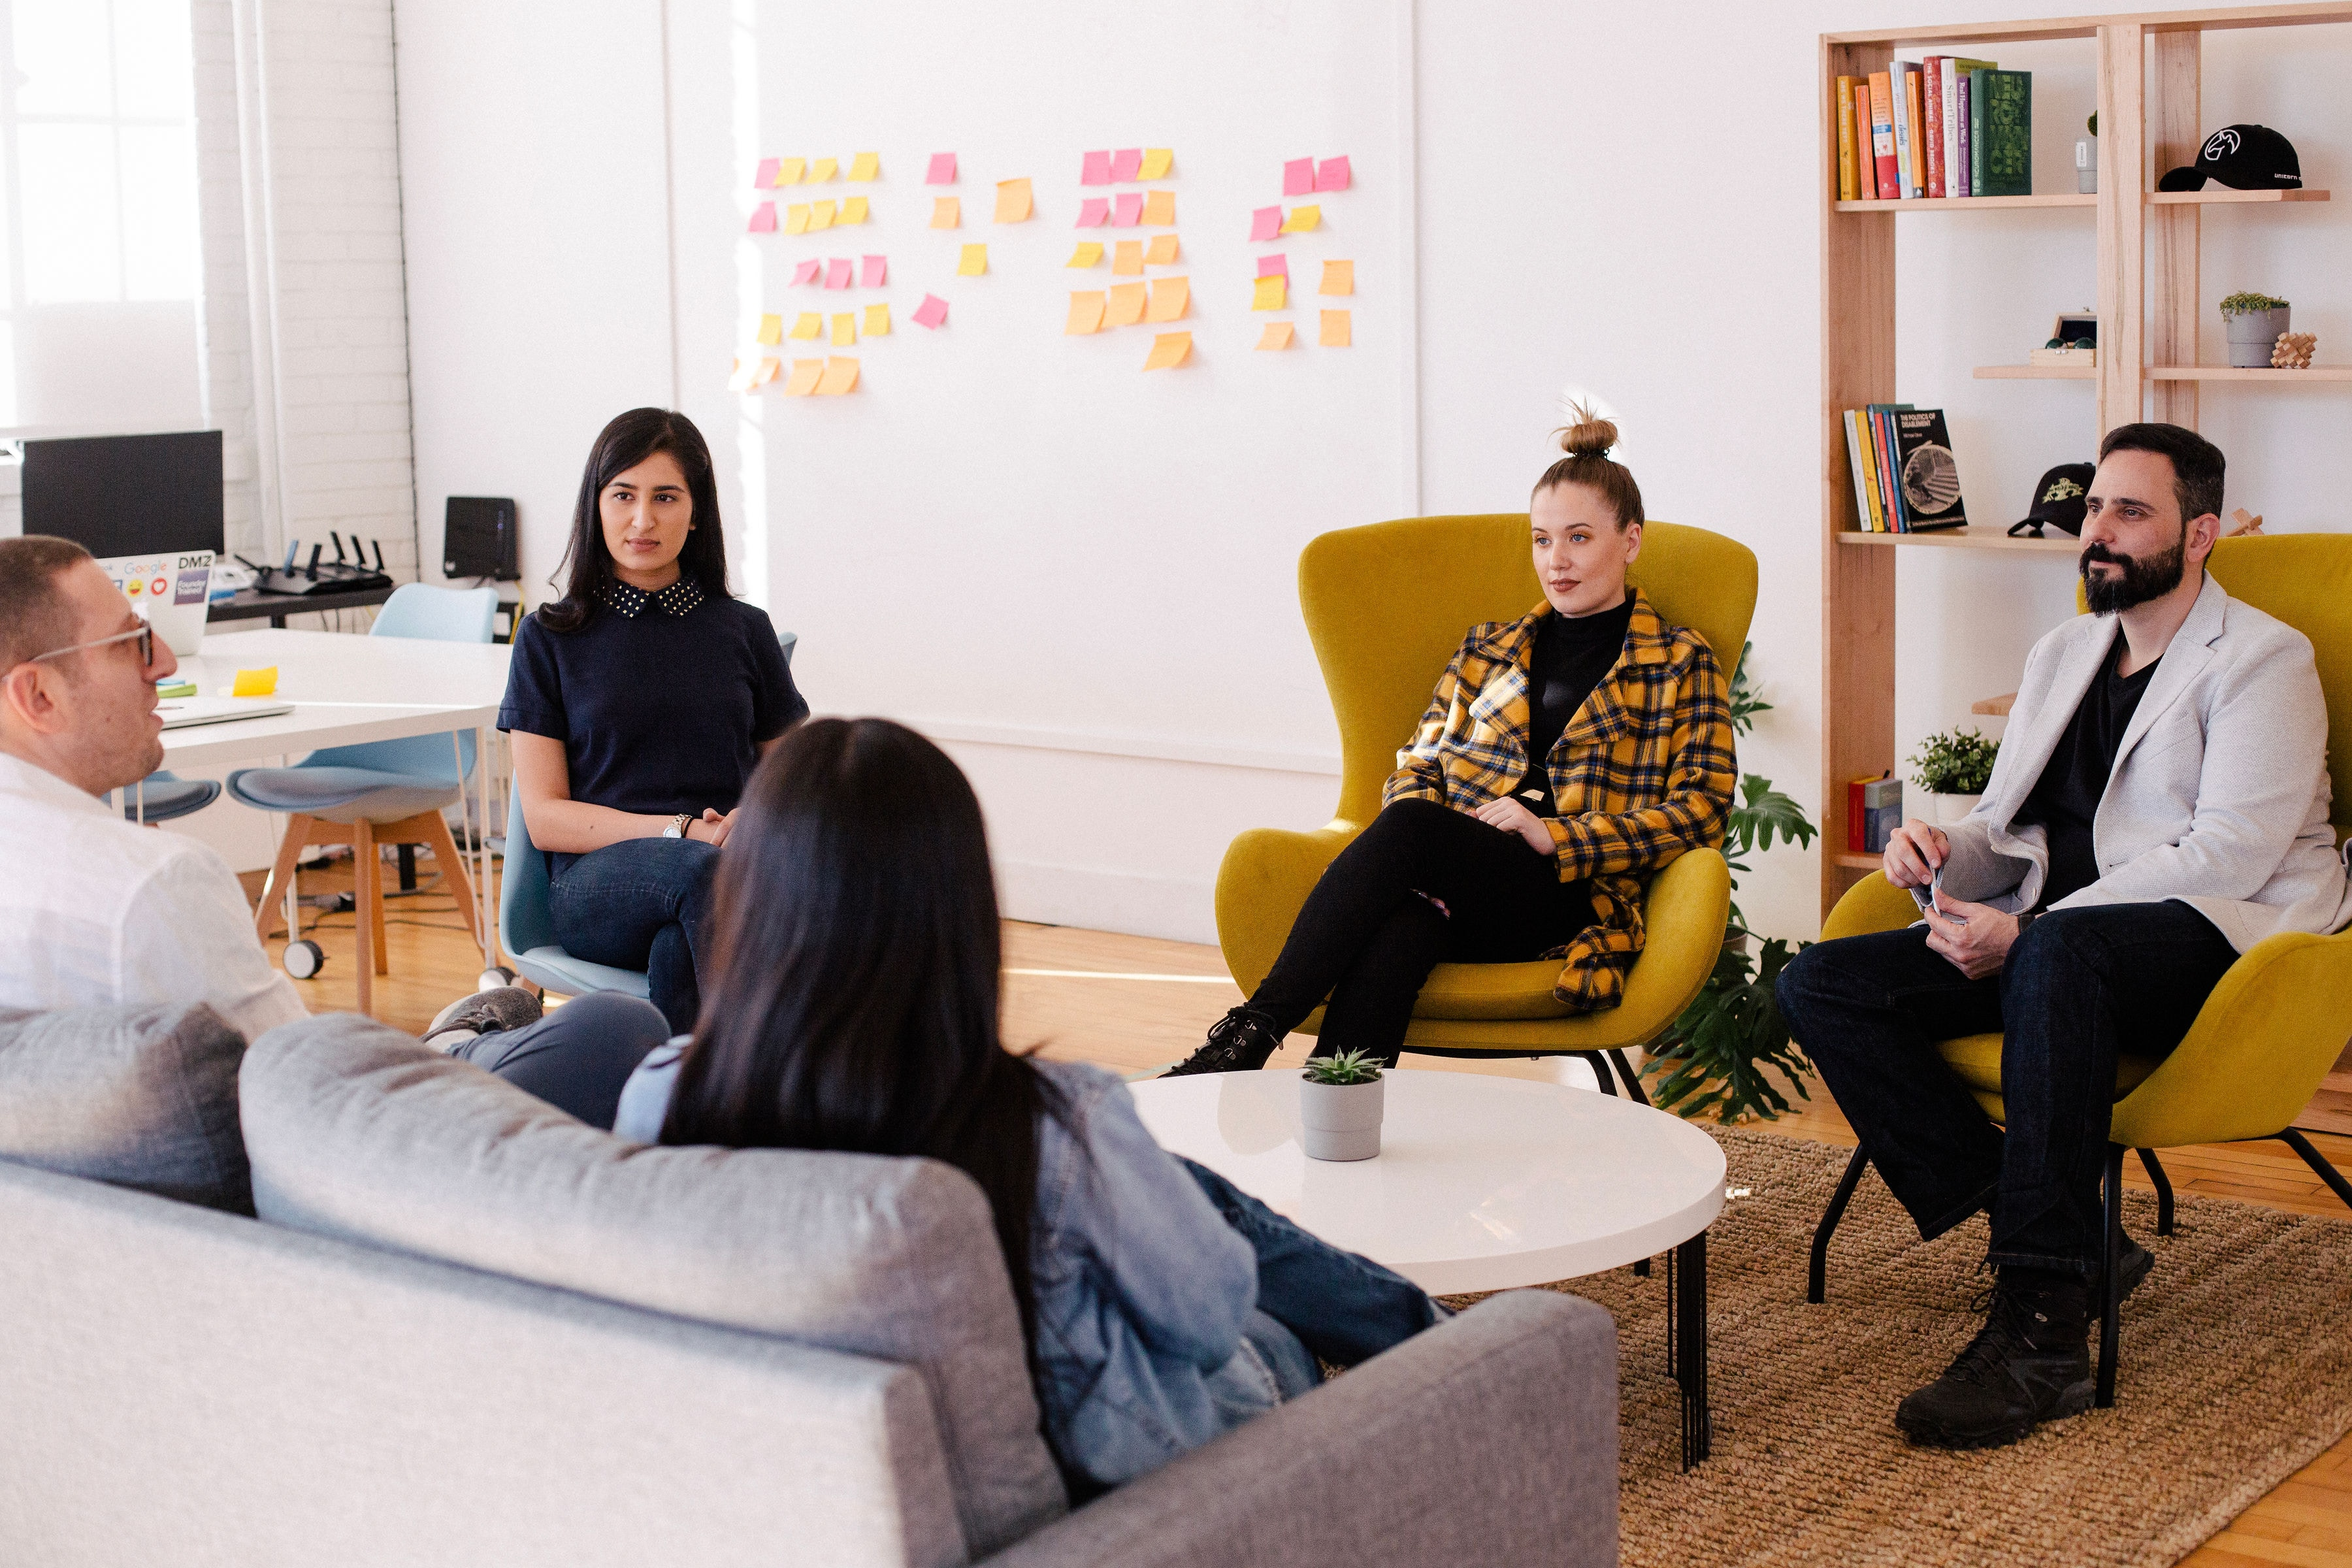 The Top-Trends-in-Team-Building-and-Training-for-2020-1